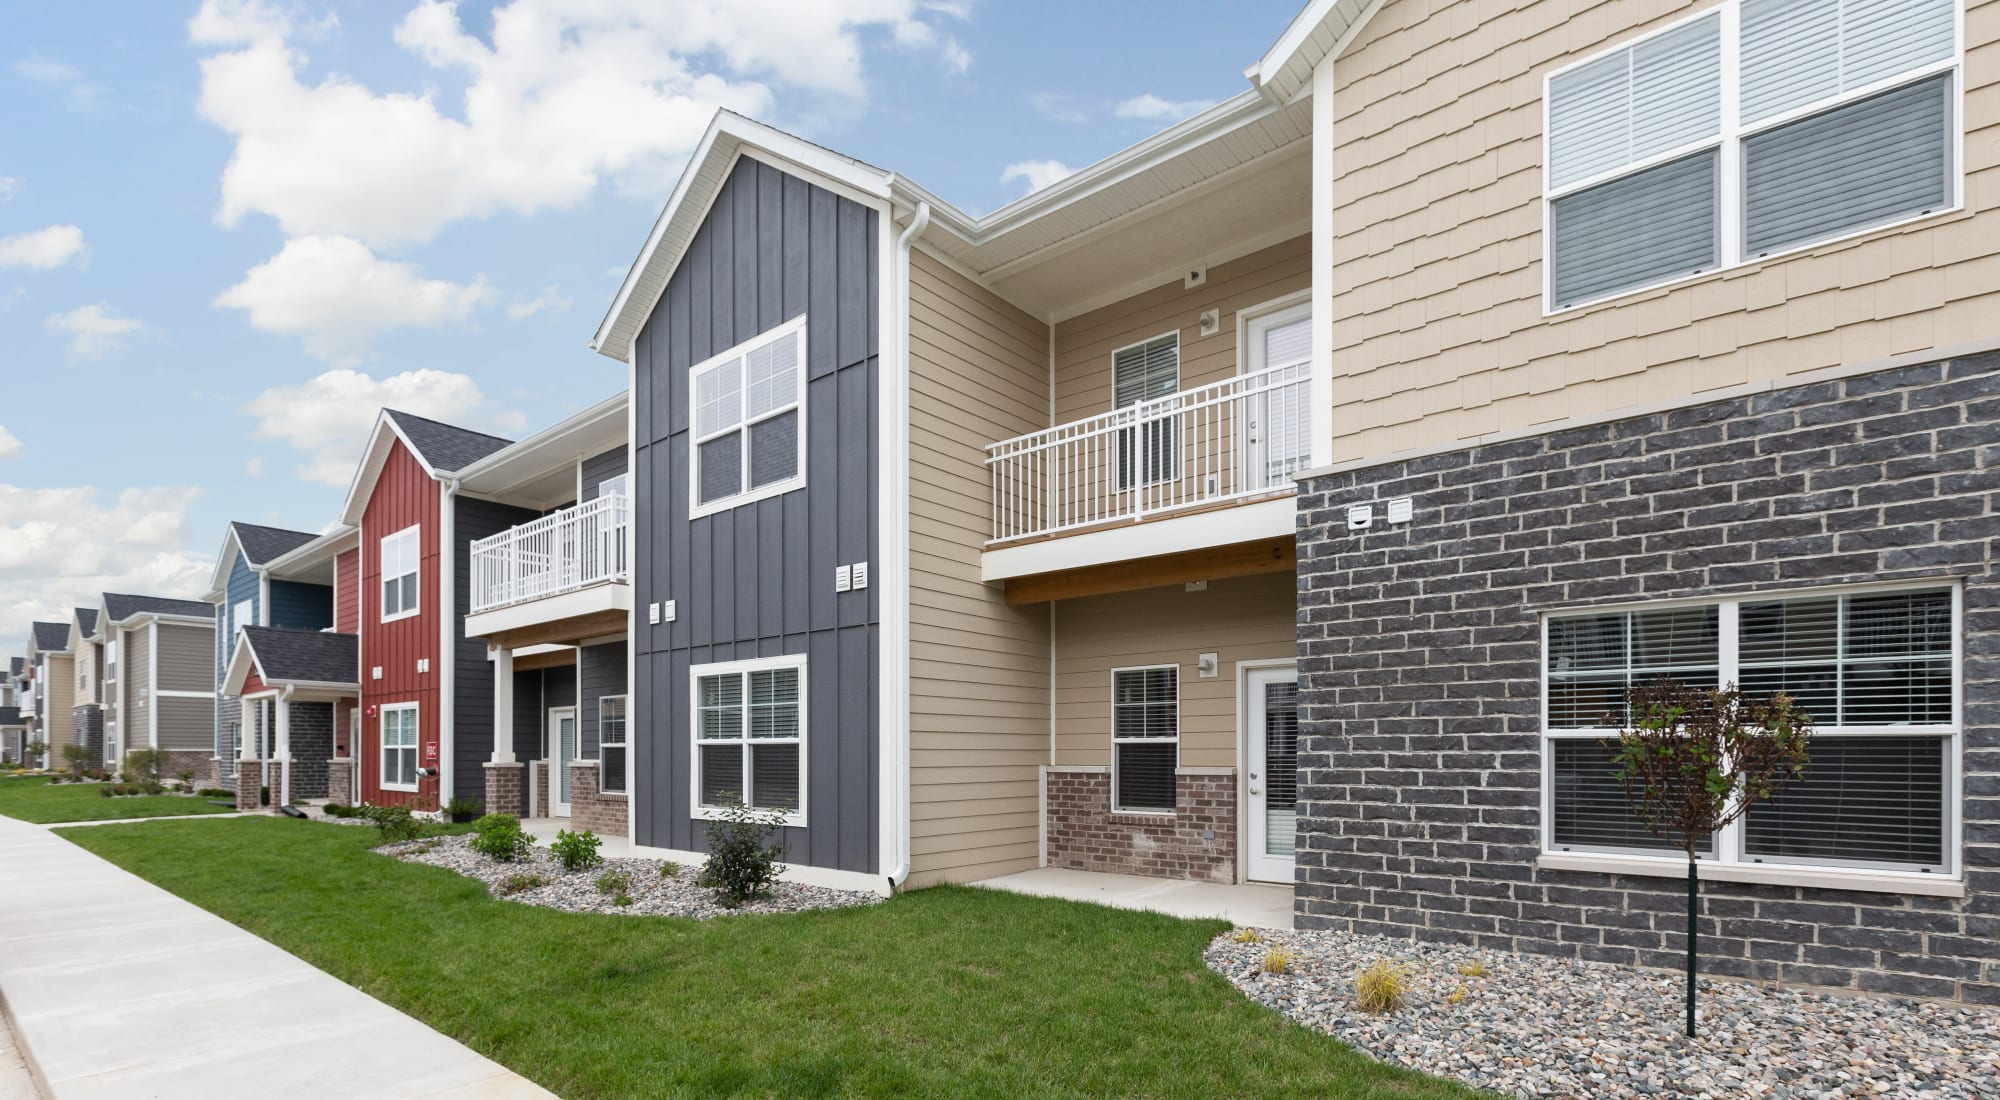 Fort Wayne apartments at Bonterra in Indiana